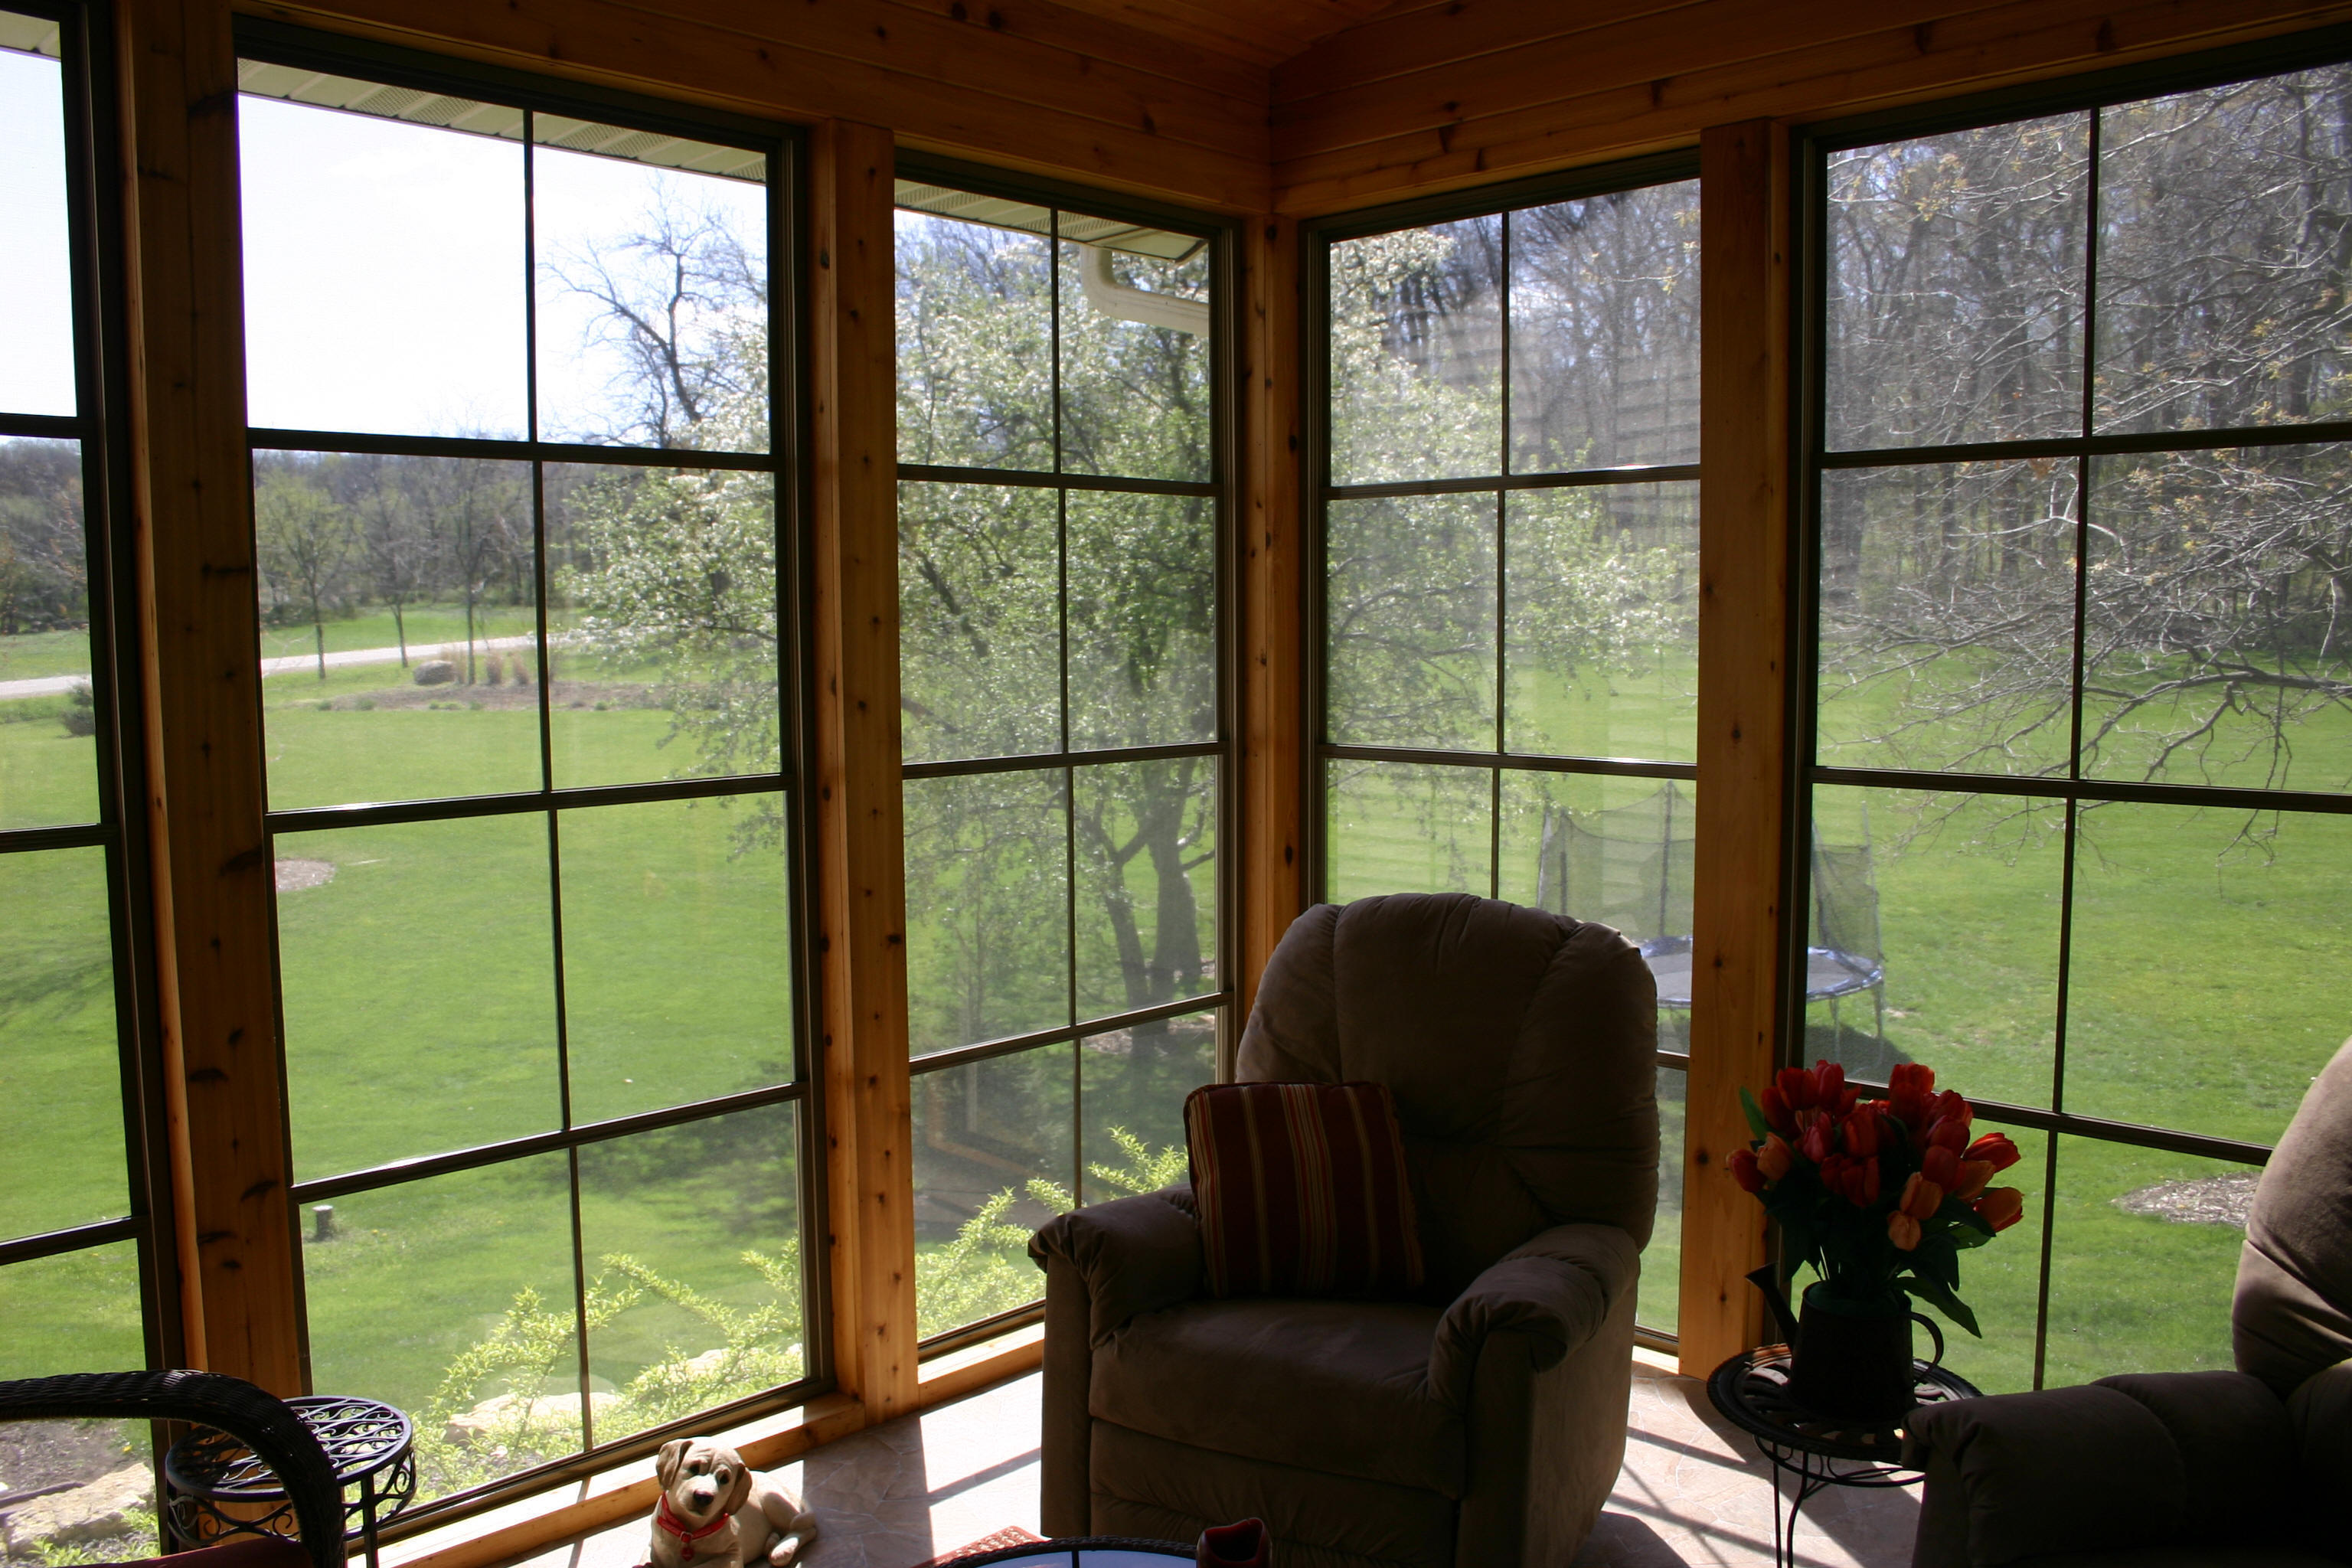 4 Track Vinyl Custom Windows In Aluminum Frames